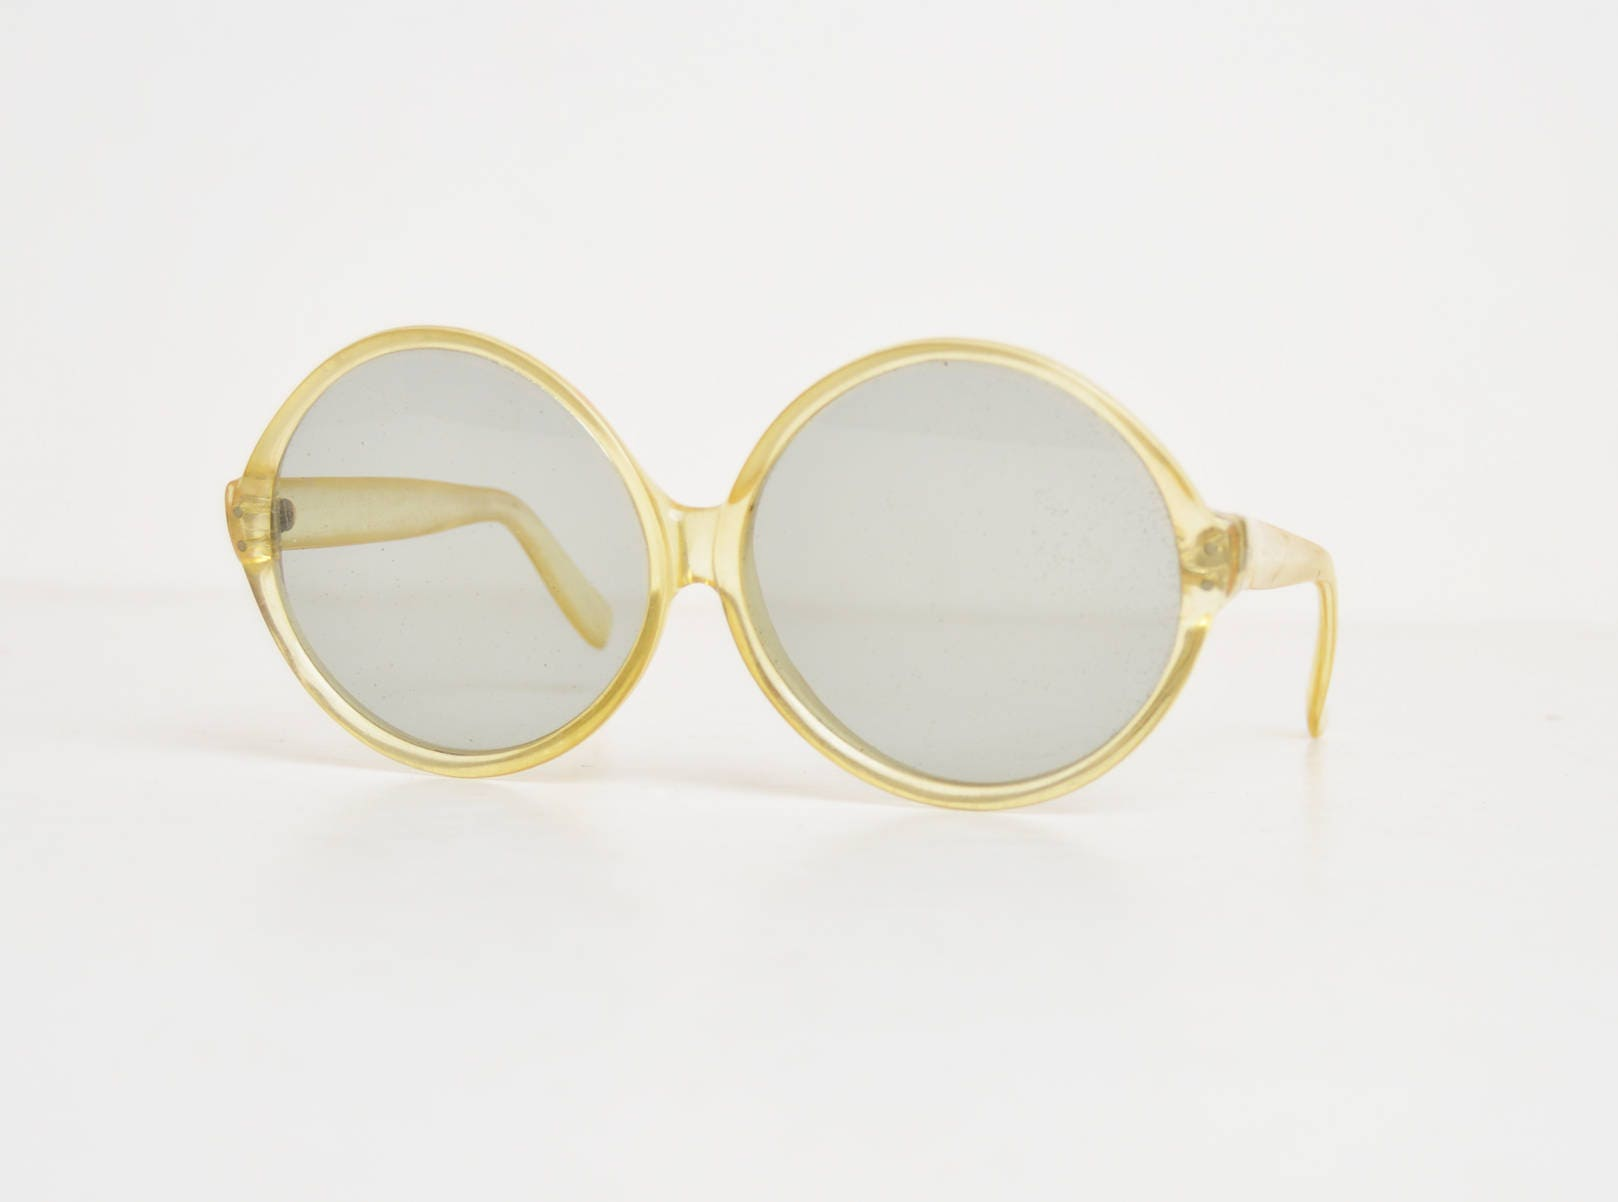 4b43bb9212e Vintage 60s 70s MOD Round Sunglasses Clear Pale Yellow Oversized Shades